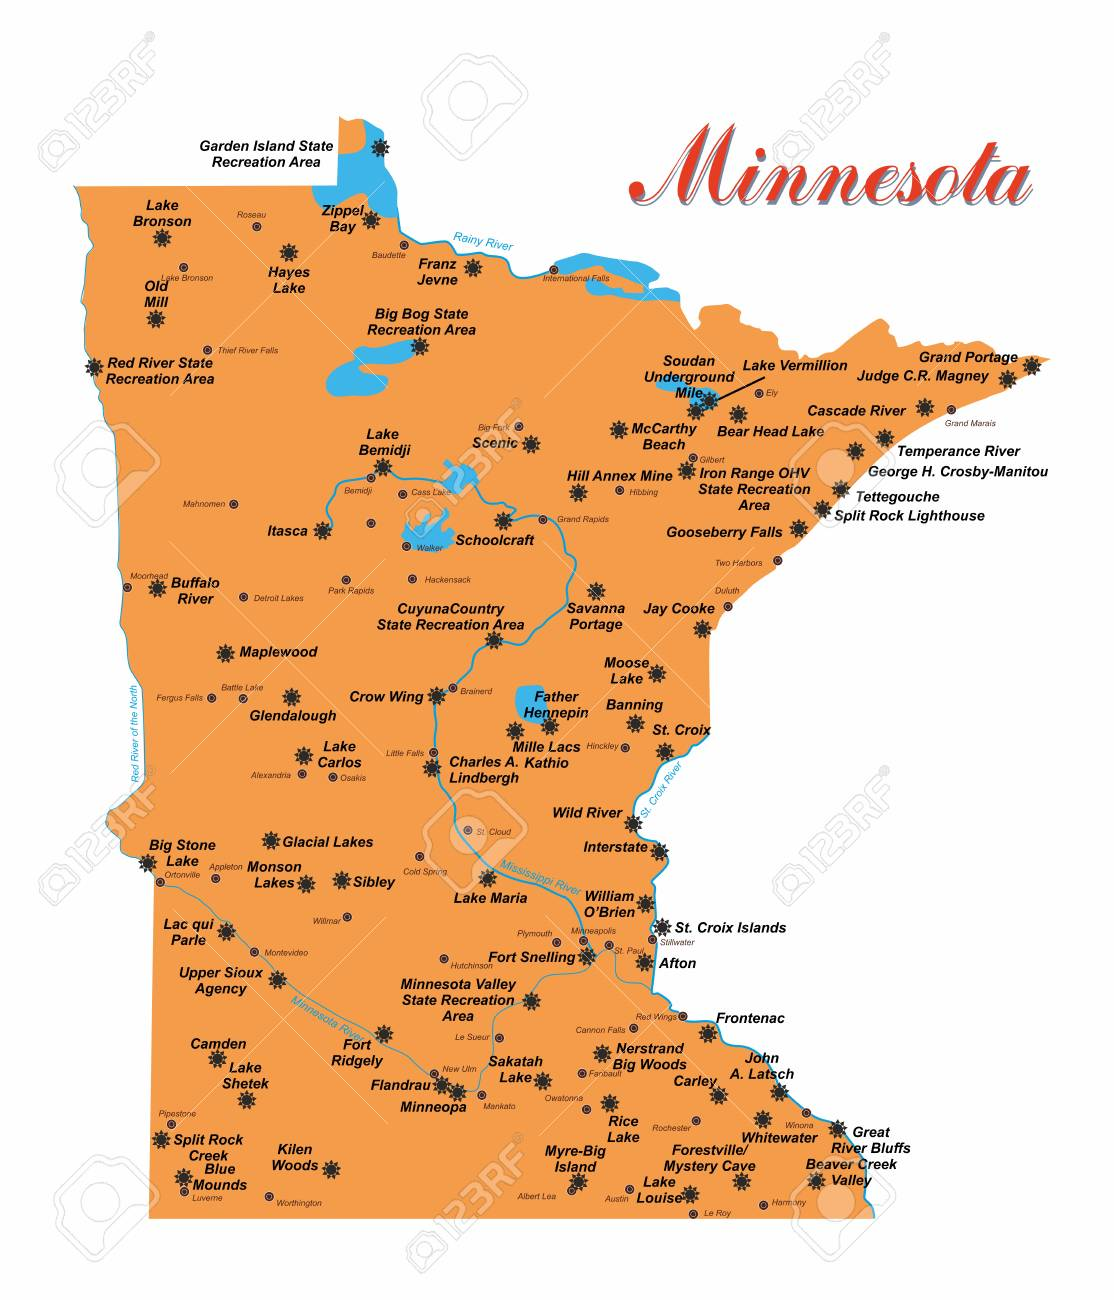 Illustration with detailed map of the state of Minnesota with.. on olympic national park map, food by state map, state birds map, badlands national park map, cuyahoga valley national park map, gates of the arctic national park map, national parks in each state, national map of usa, monuments by state map, new york state national parks map, casinos by state map, politics by state map, carlsbad caverns national park map, concealed carry by state map, religion by state map, katmai national park and preserve map, national wildlife refuges by state map, superfund sites by state map, military bases by state map, weather by state map,